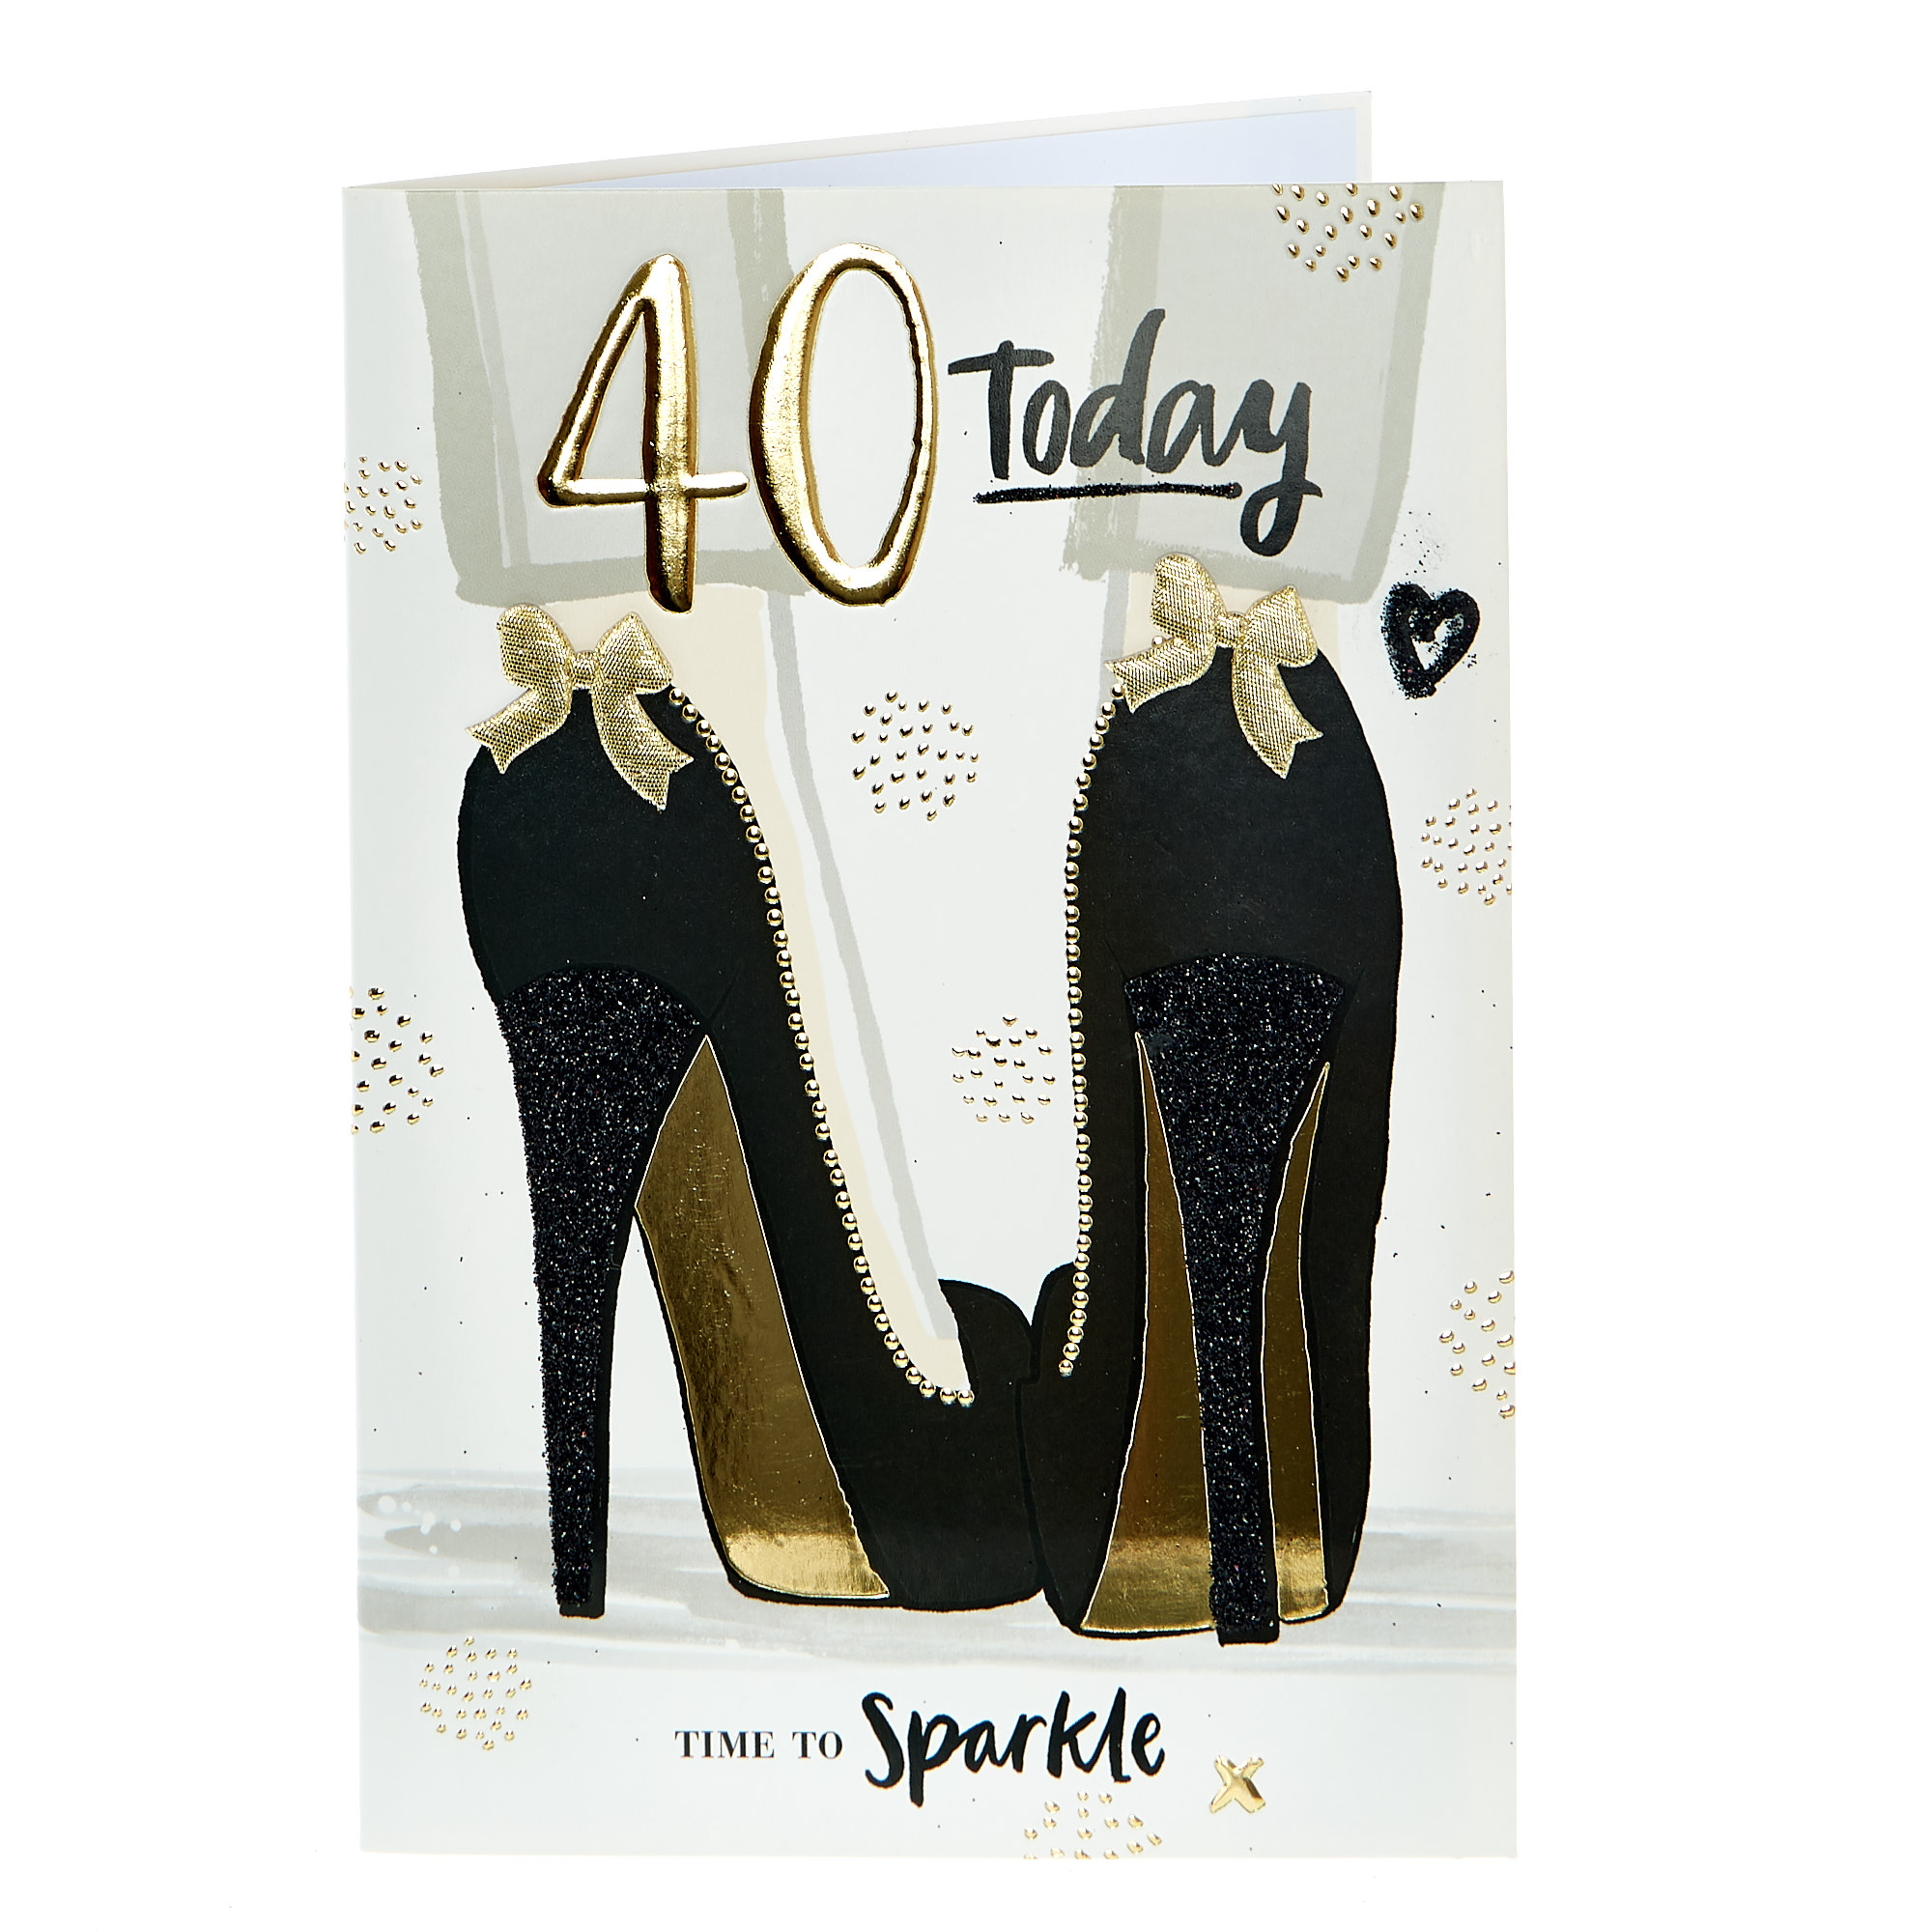 40th Birthday Card - Time To Sparkle